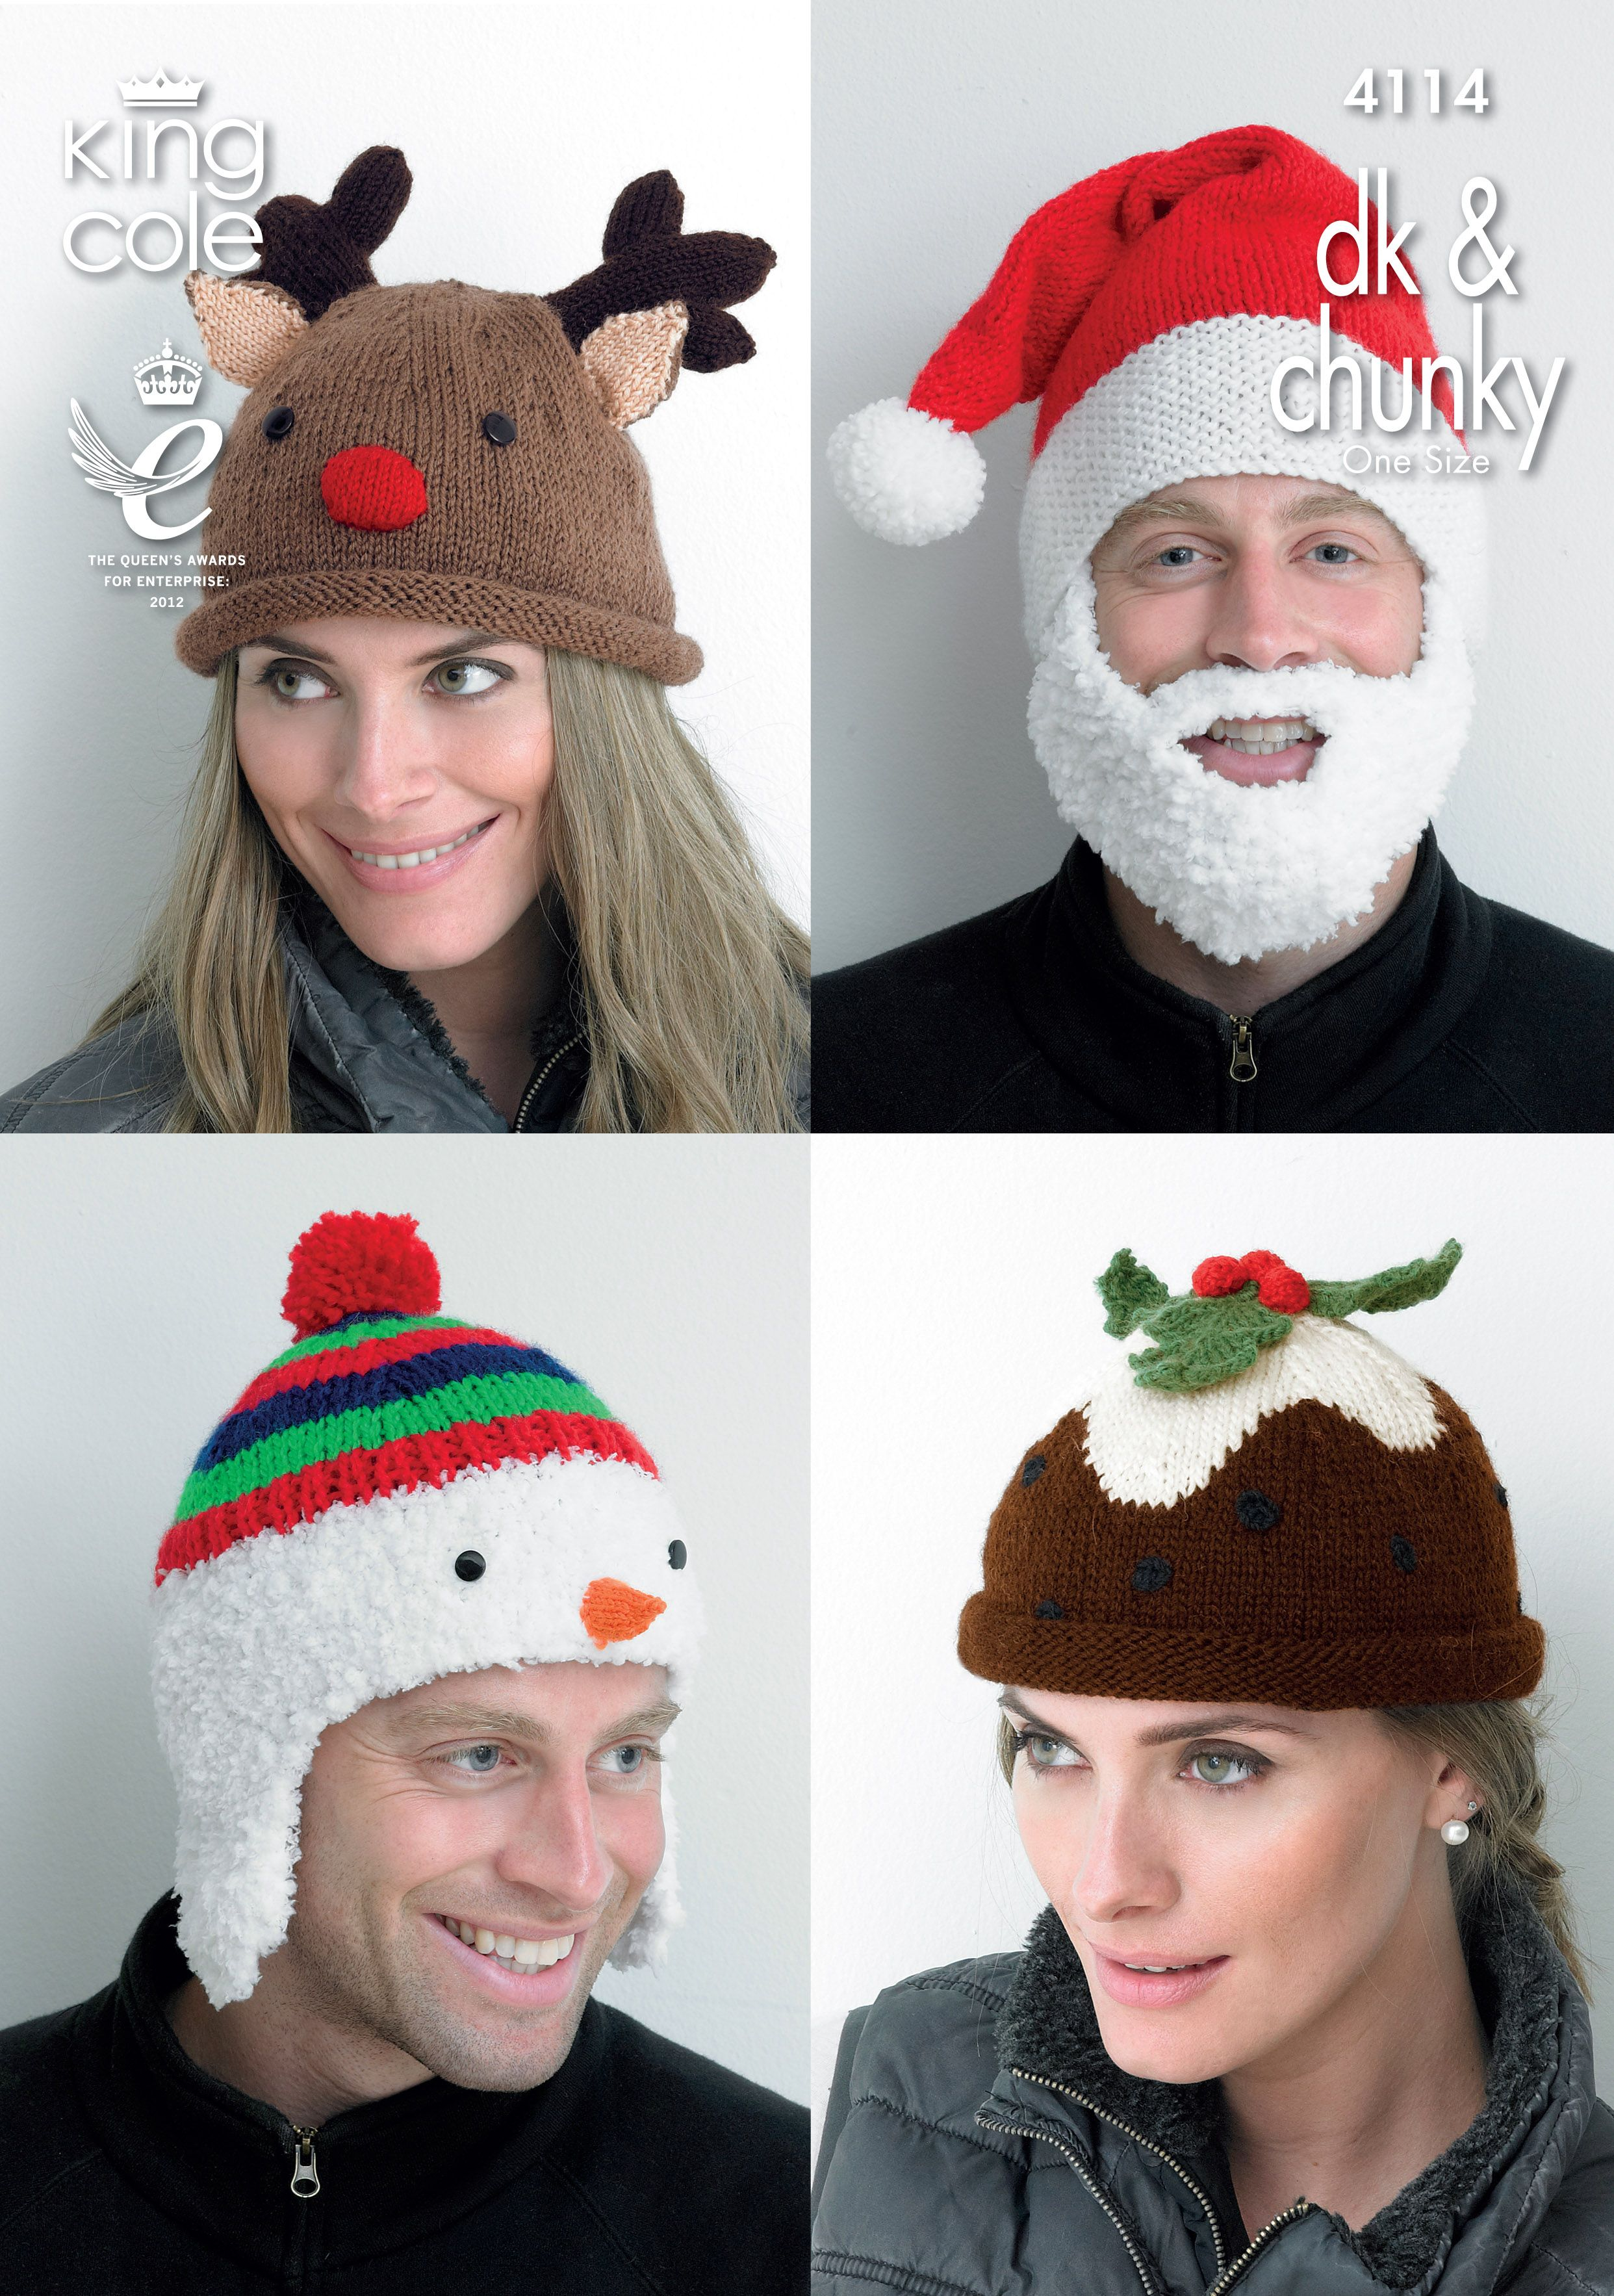 Christmas Hat Knitting Pattern 4114 - King Cole Knitted Rudolph hat ...